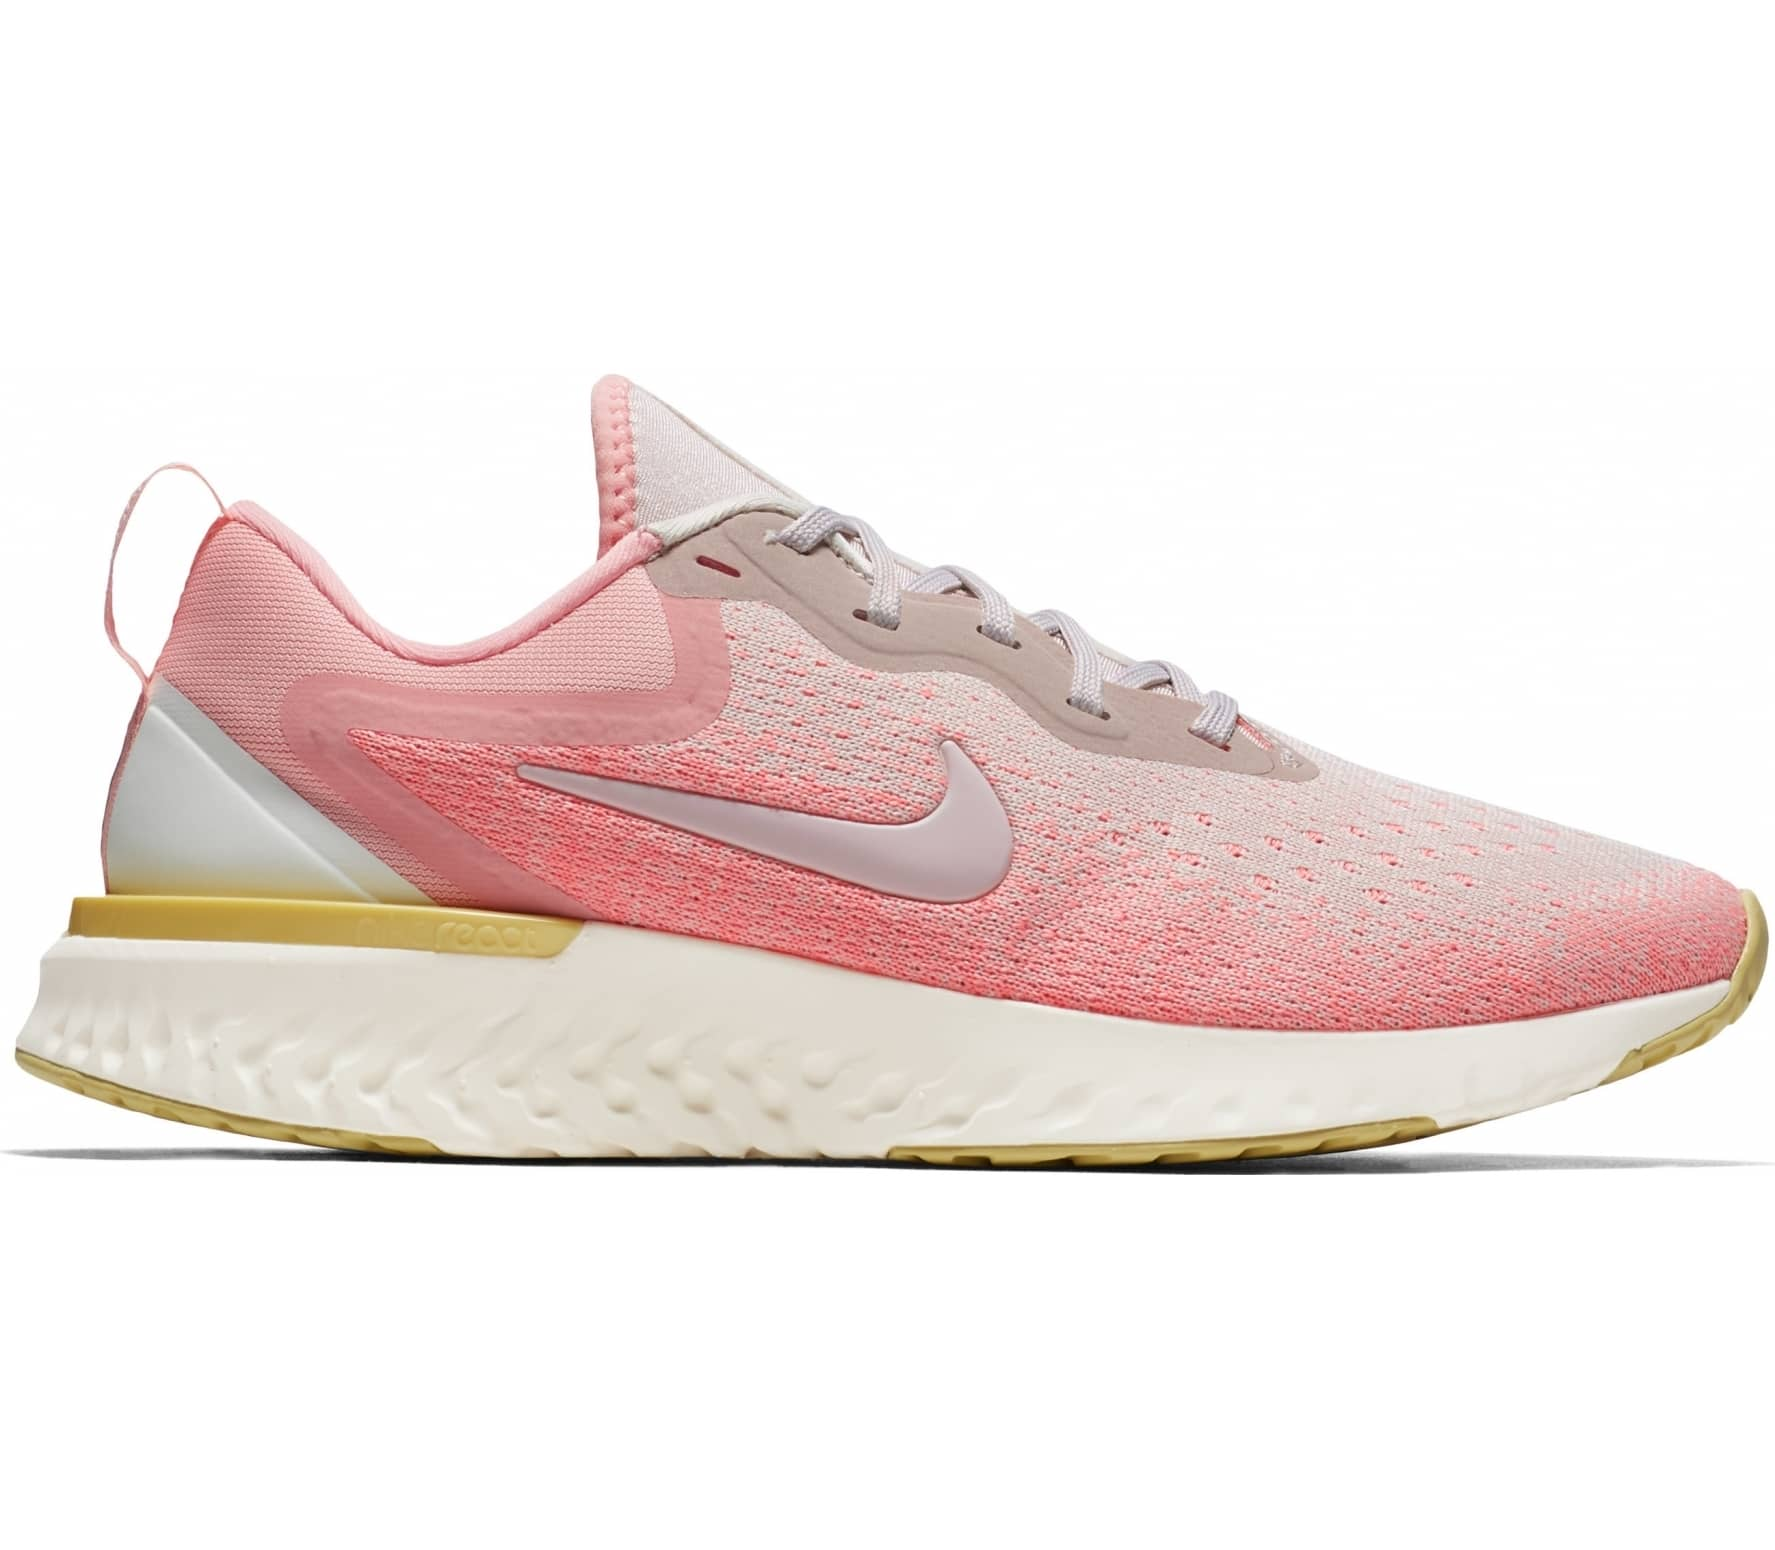 new product 9572c 4d5af Nike - Odyssey React women's running shoes (pink)